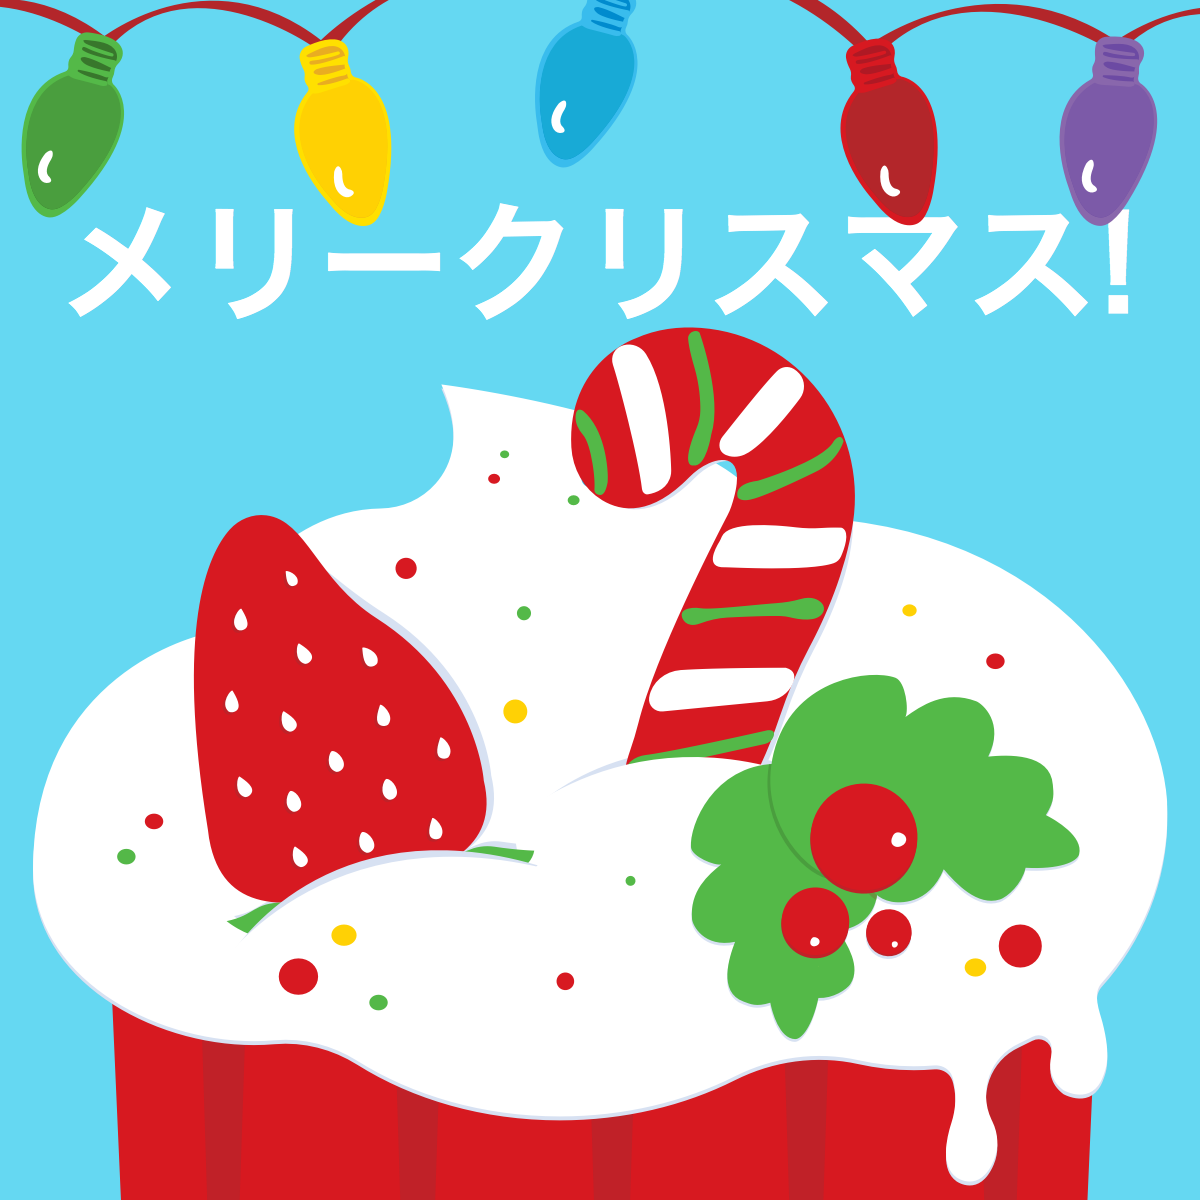 Merry Christmas! in Japan - We all know and love the spirit of Christmas in the West. But what about Japan? Does Japan celebrate Christmas? And if so, is it all the same as the one back home?